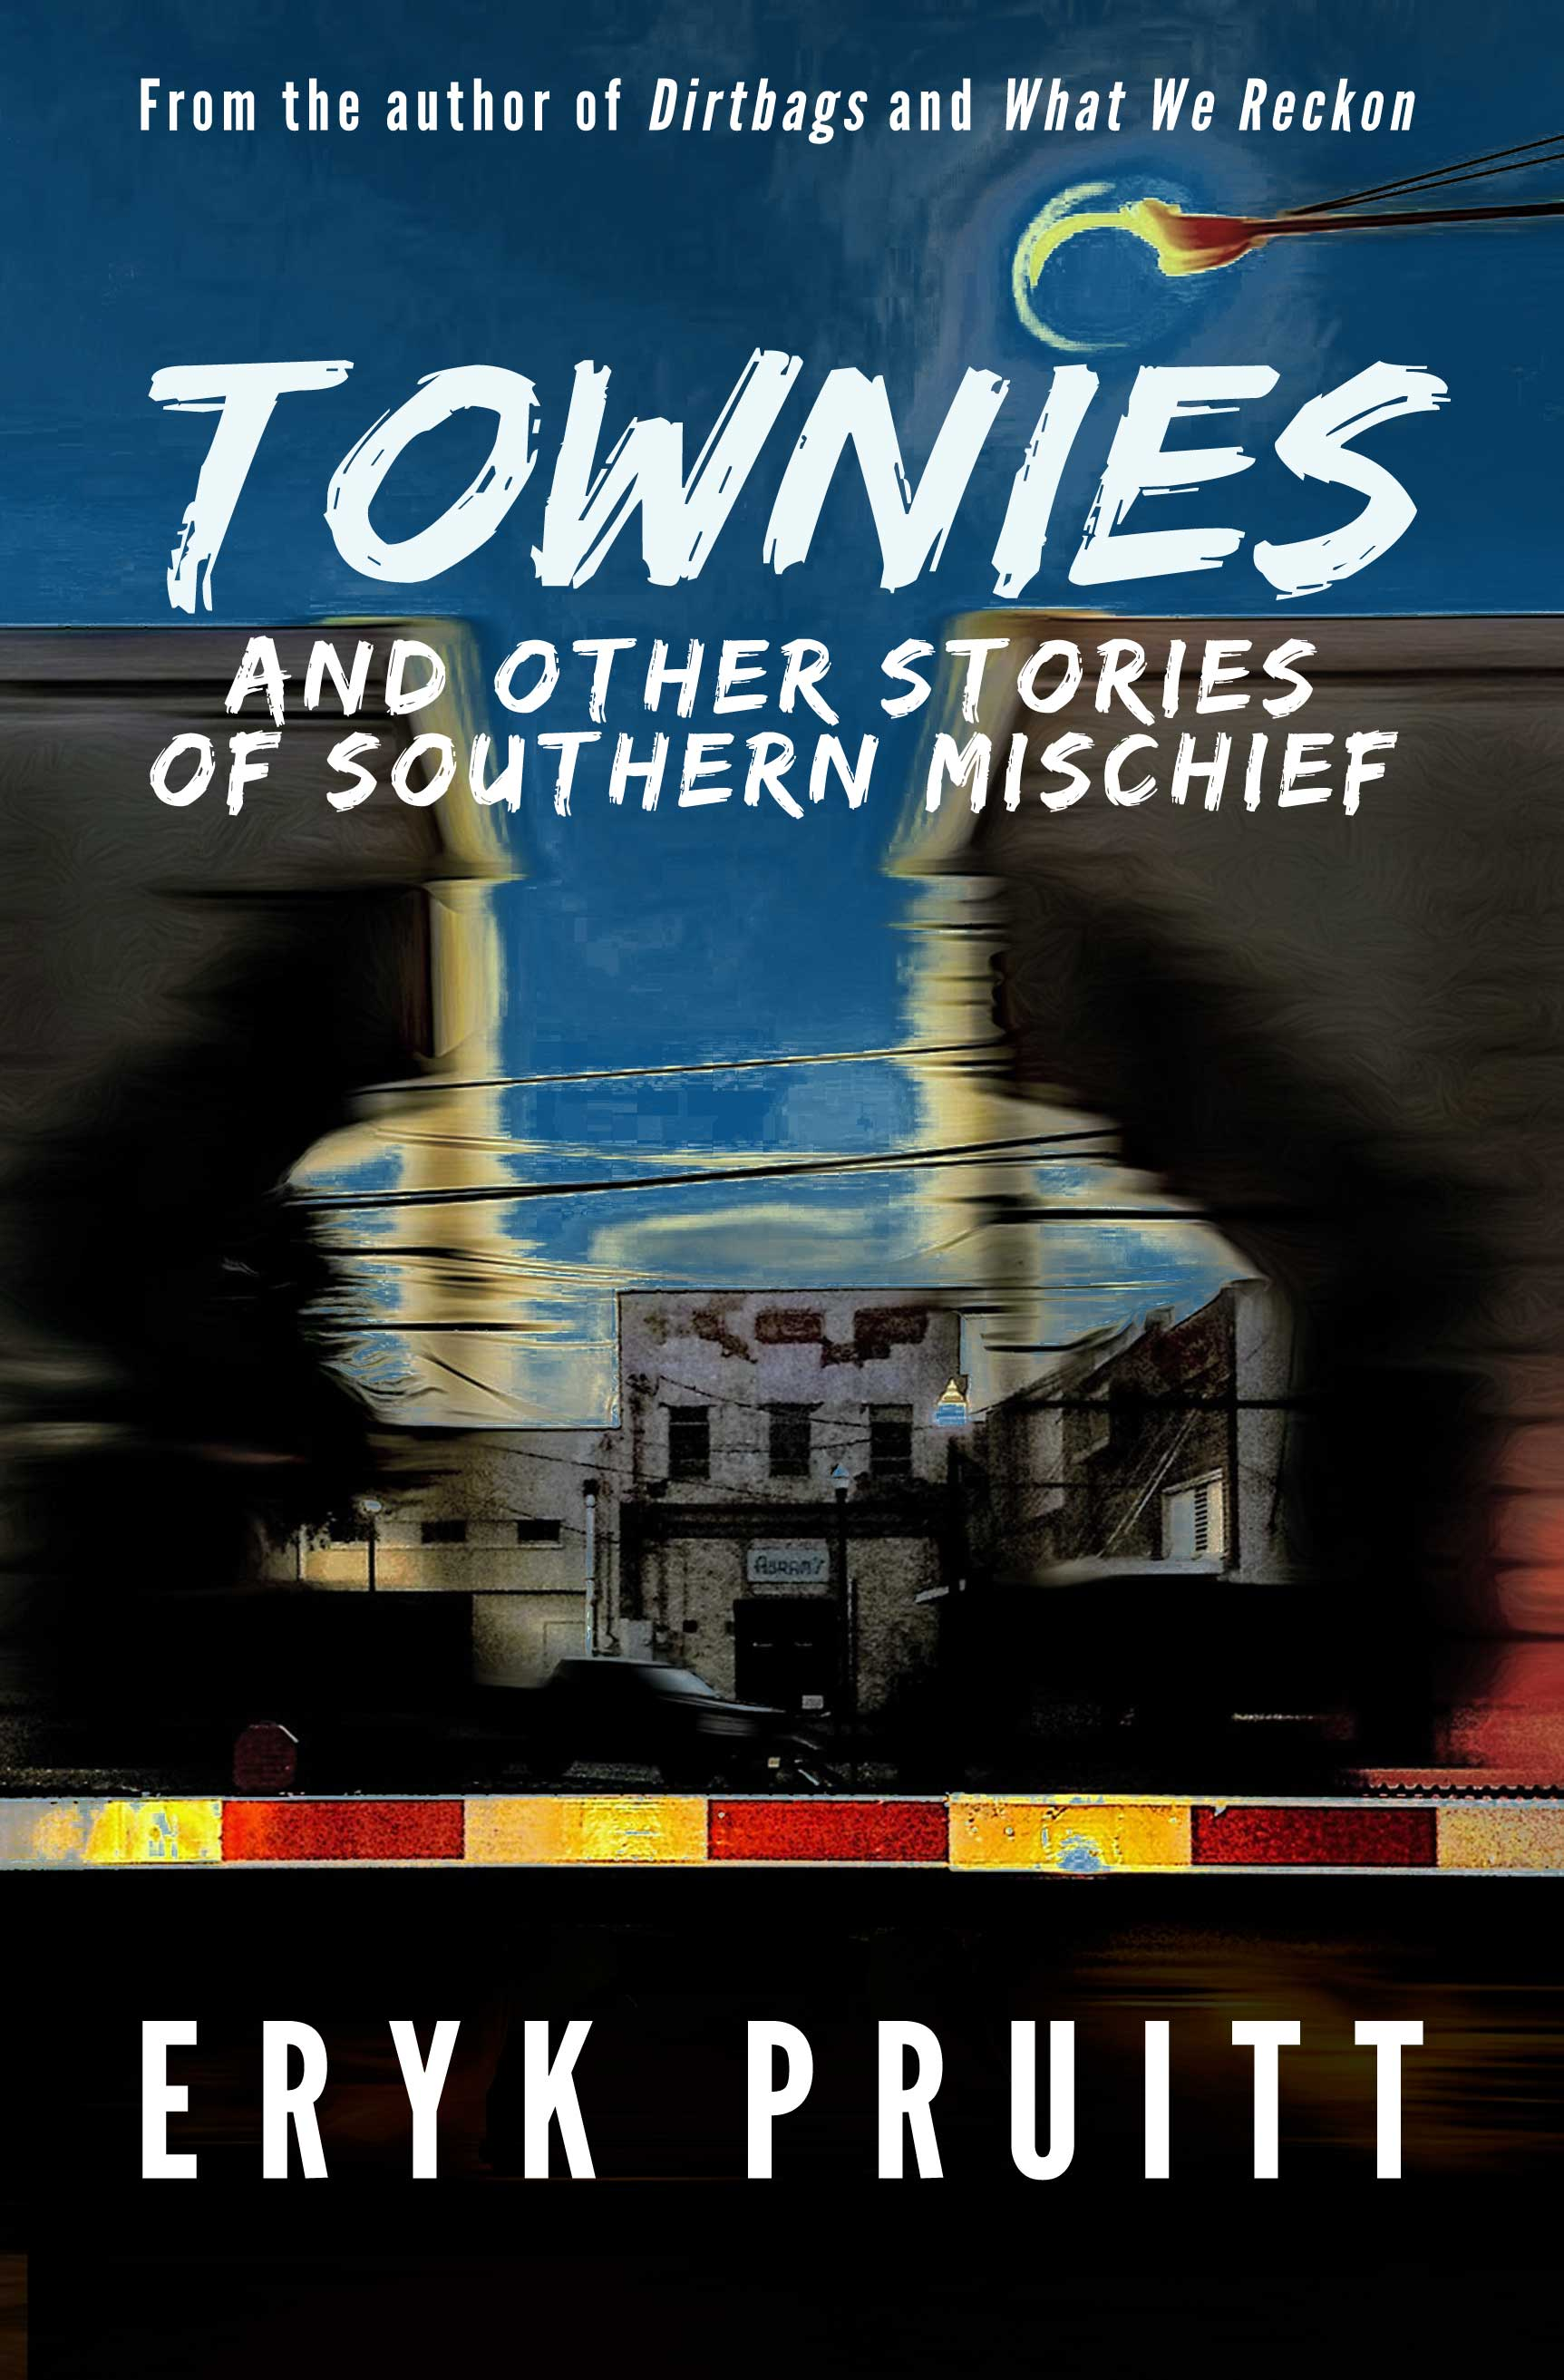 Townies and Other Southern Noir Tales